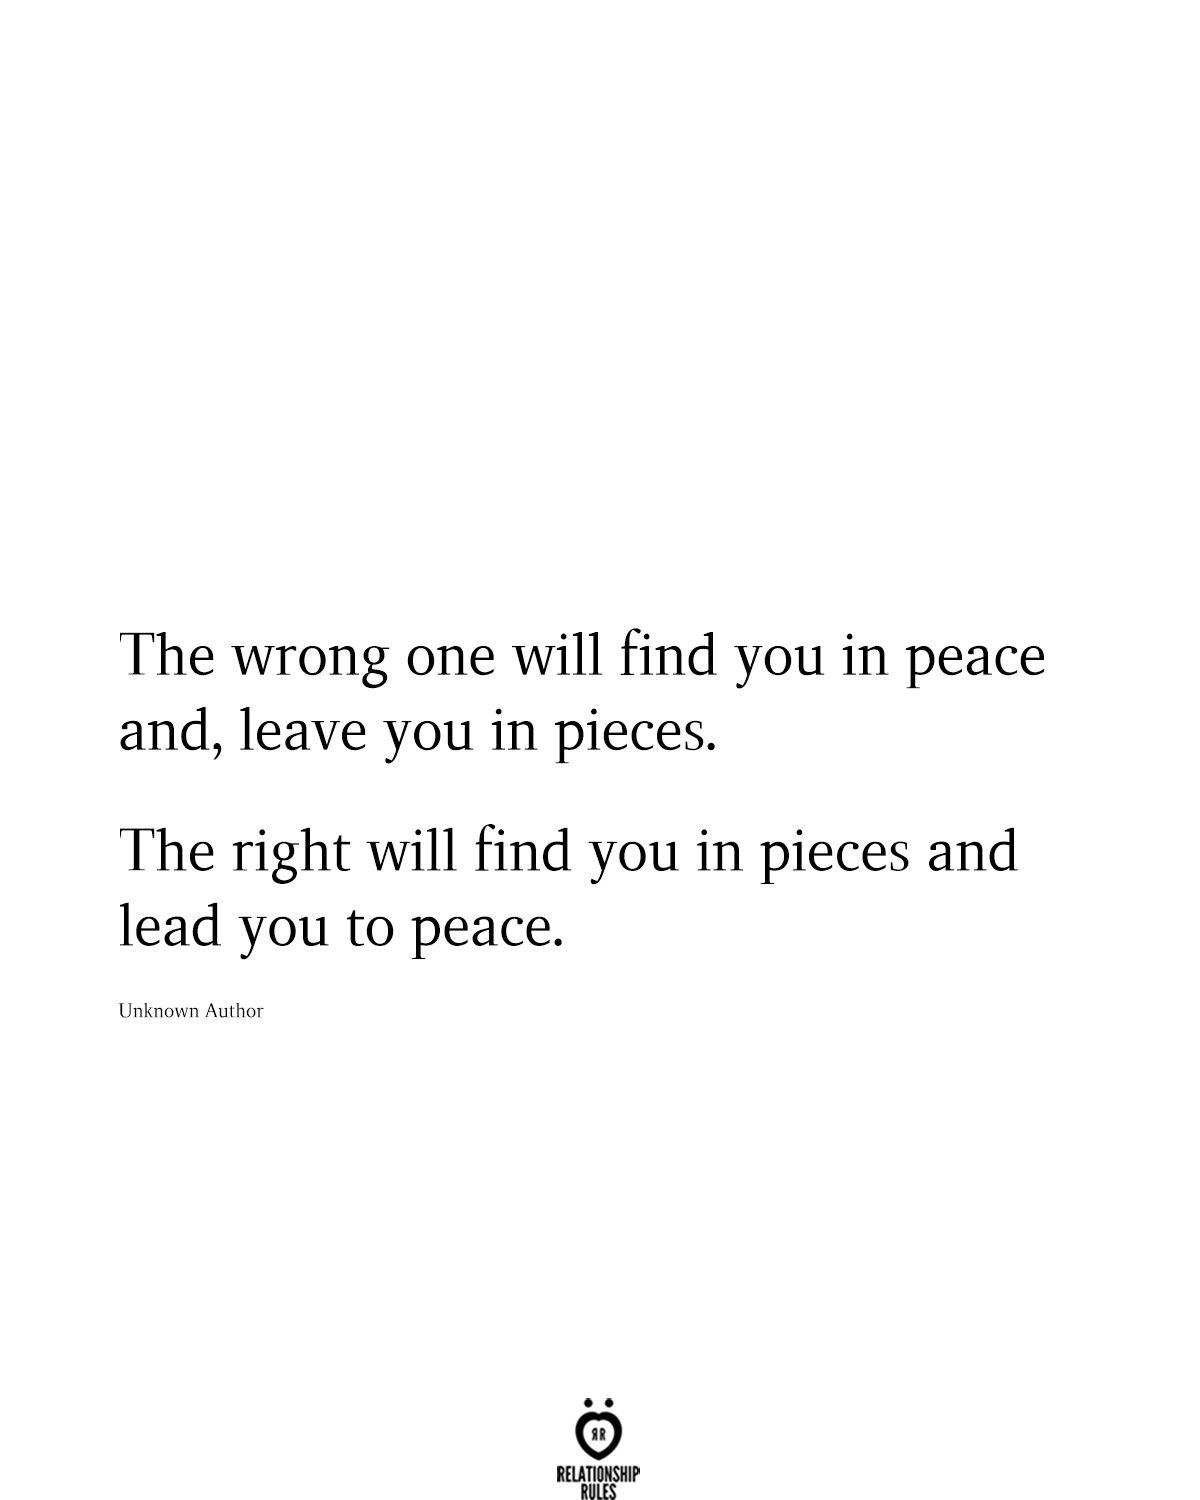 The Wrong One Will Find You In Peace And, Leave You In Pieces